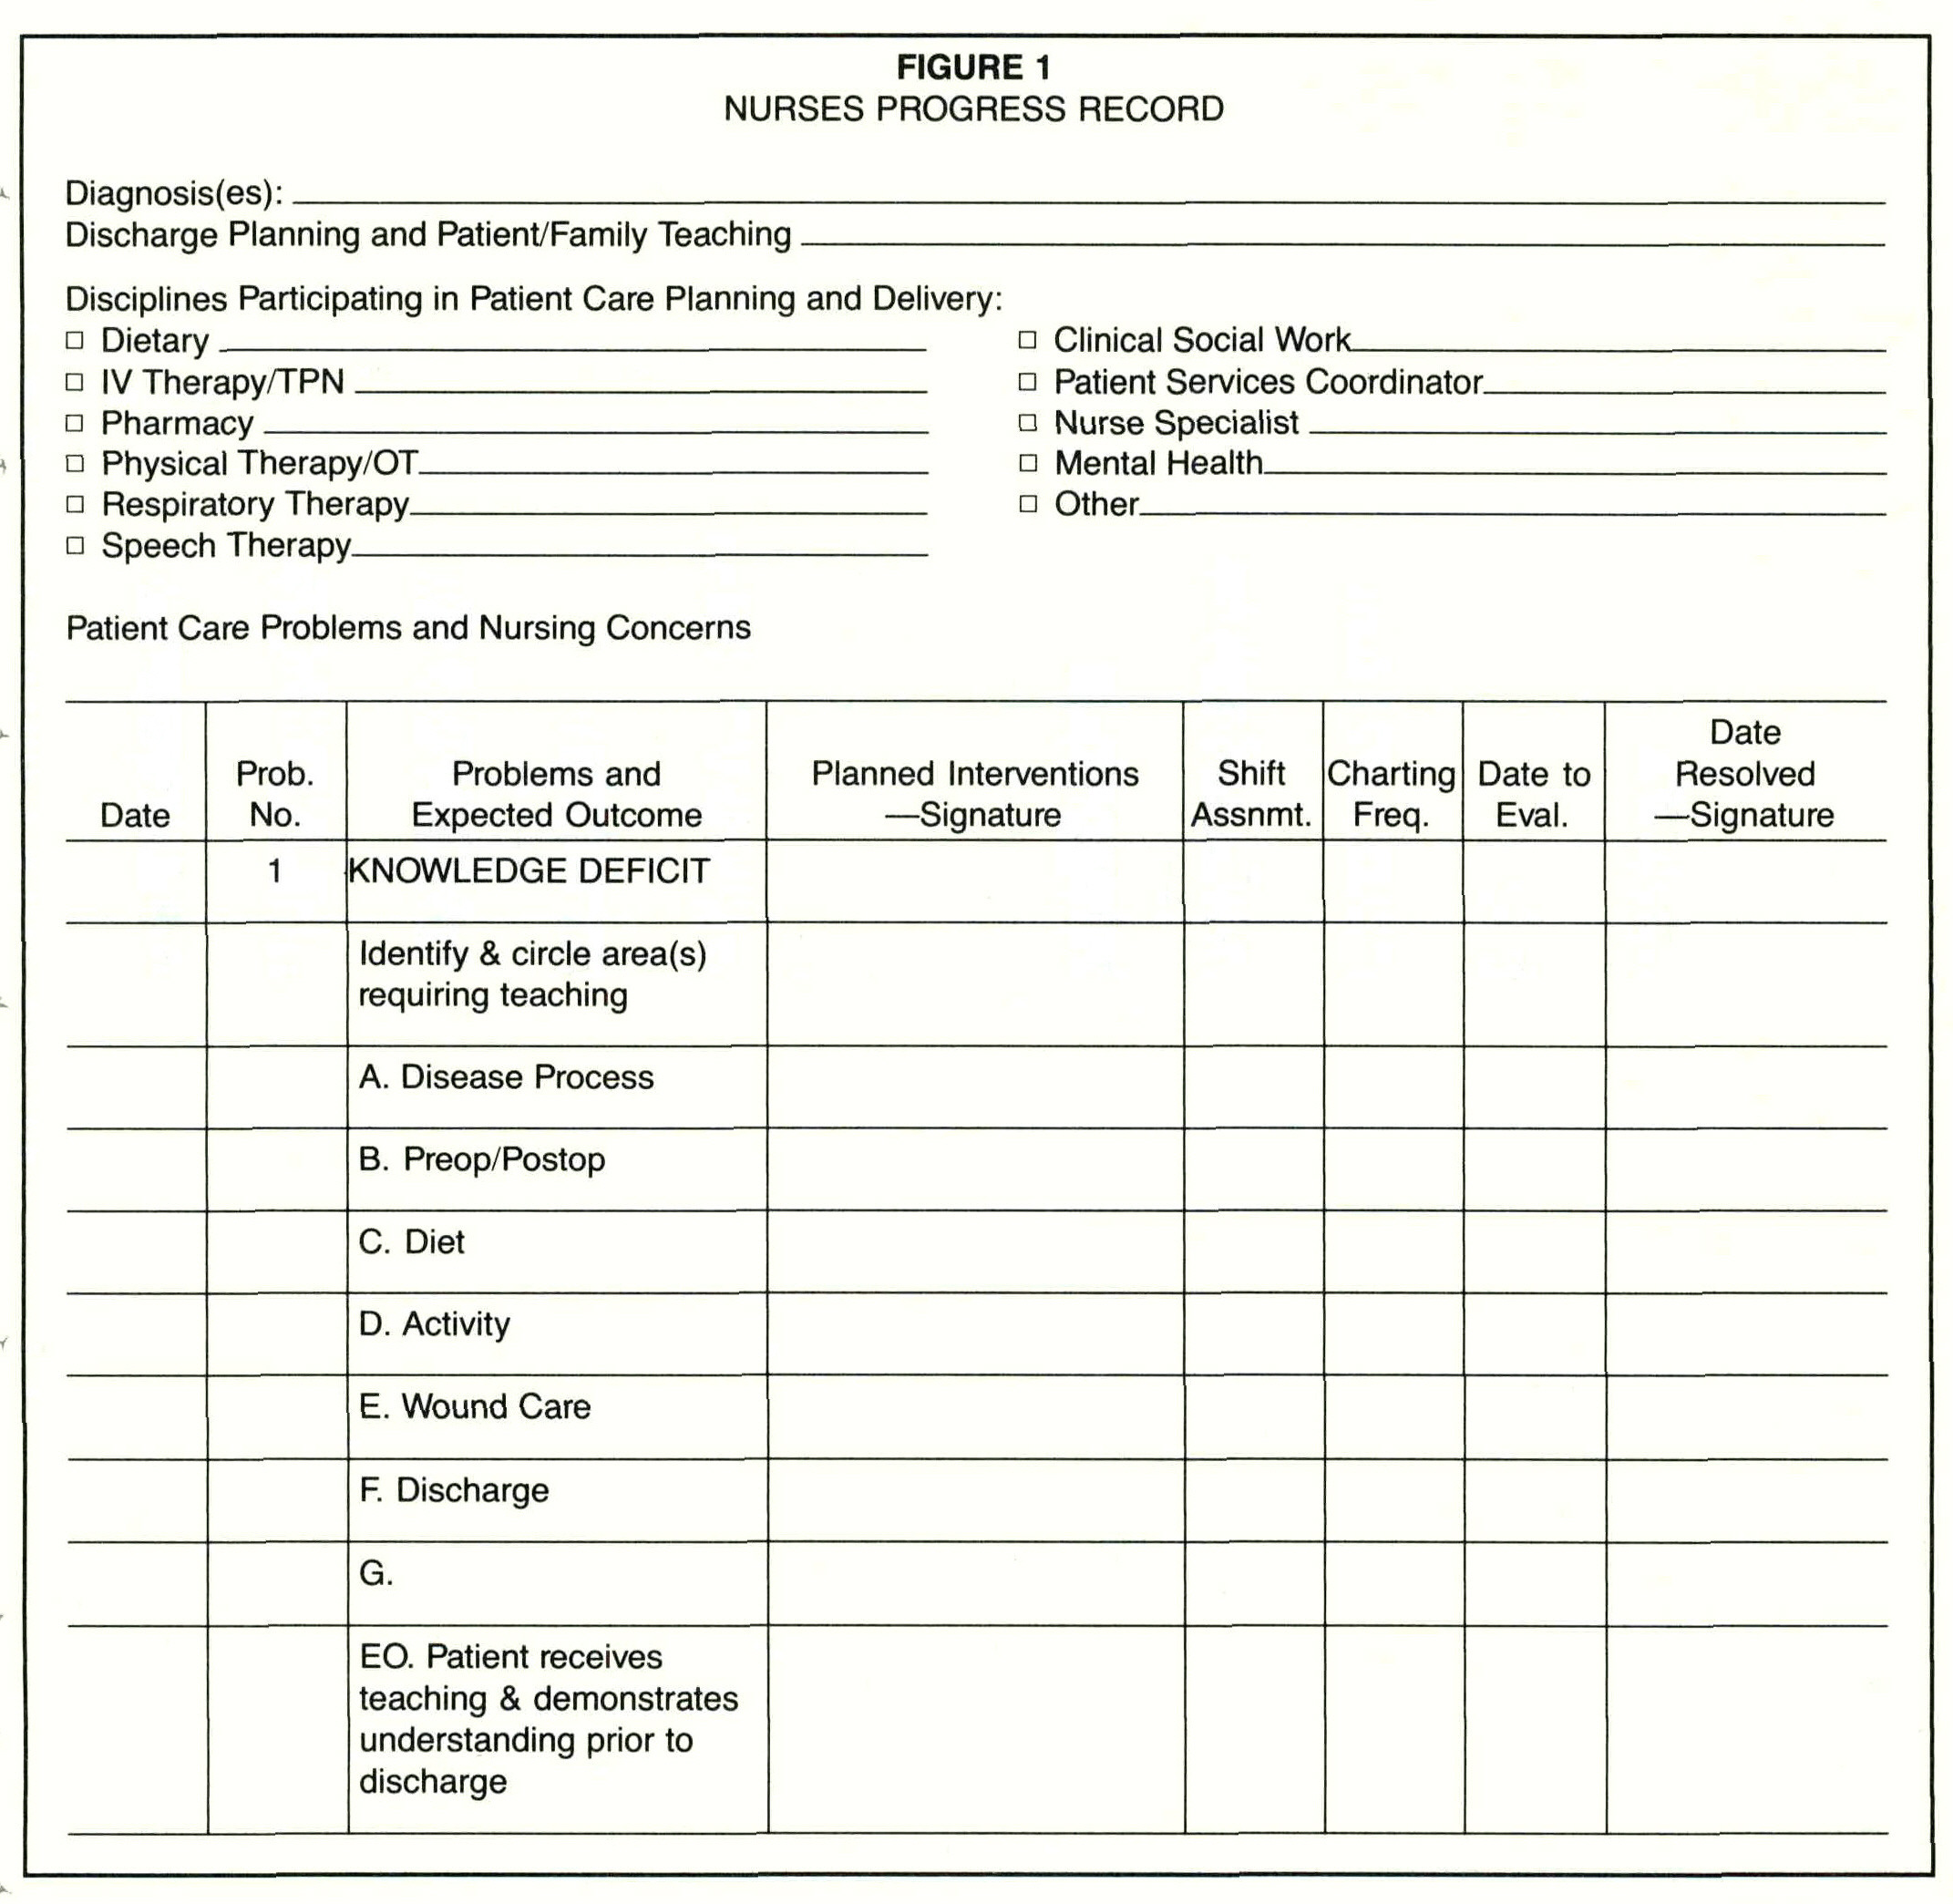 Discharge summary for physical therapy - Figure 1nurses Progress Record